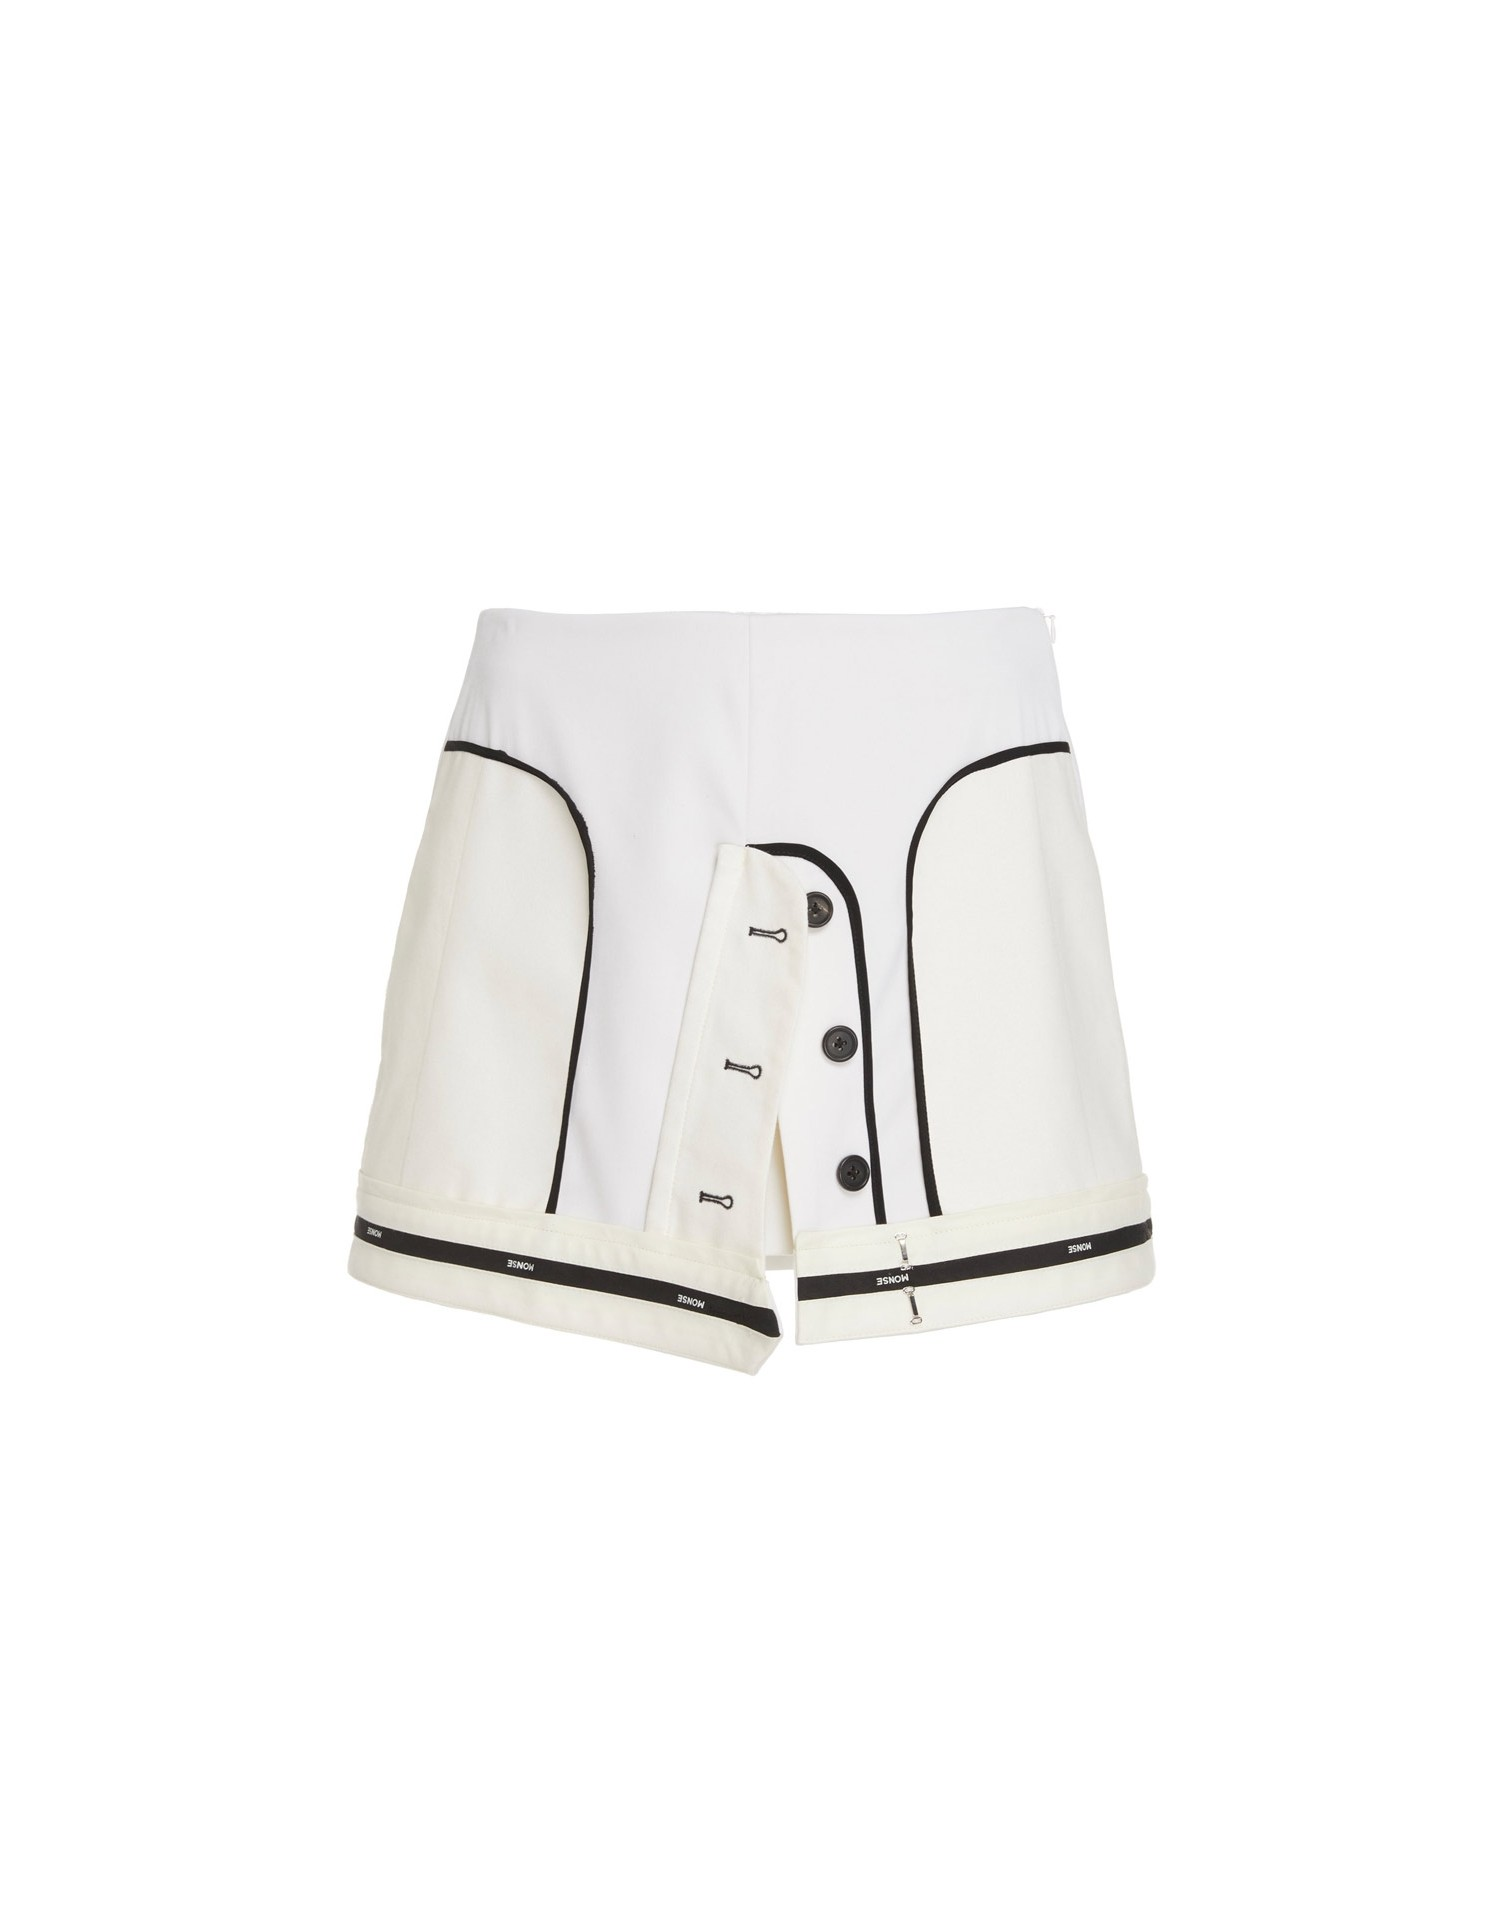 MONSE Inverted Mini Skirt on Model Front View